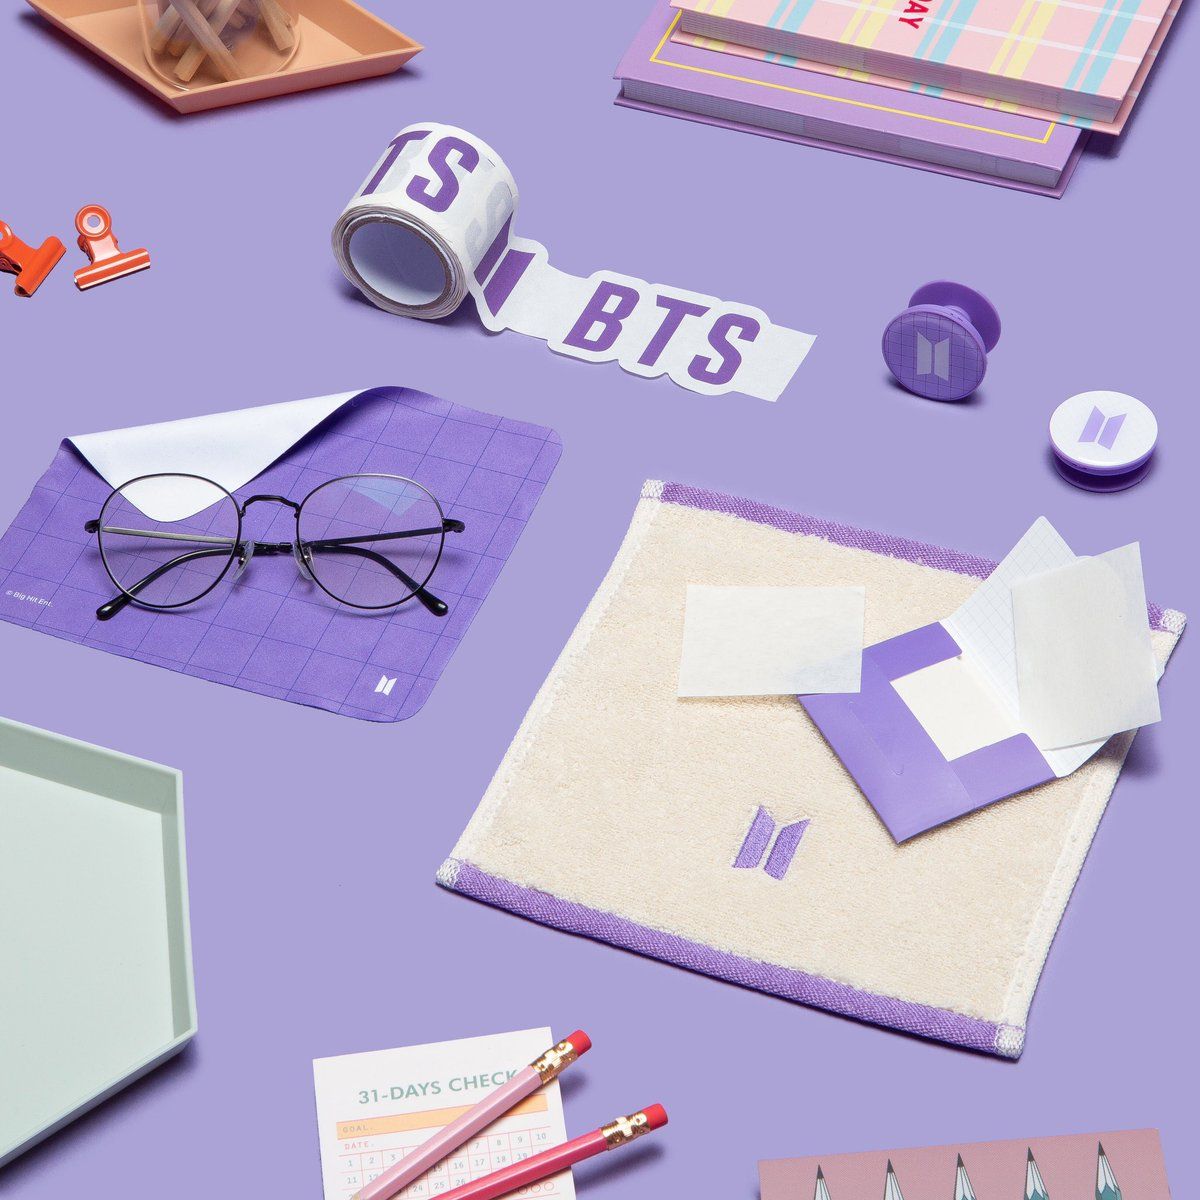 BTS space of bts グッズ 代行承ります DMにてお問合せ下さい #BTS_POPUP #SPACE_OF_BTS